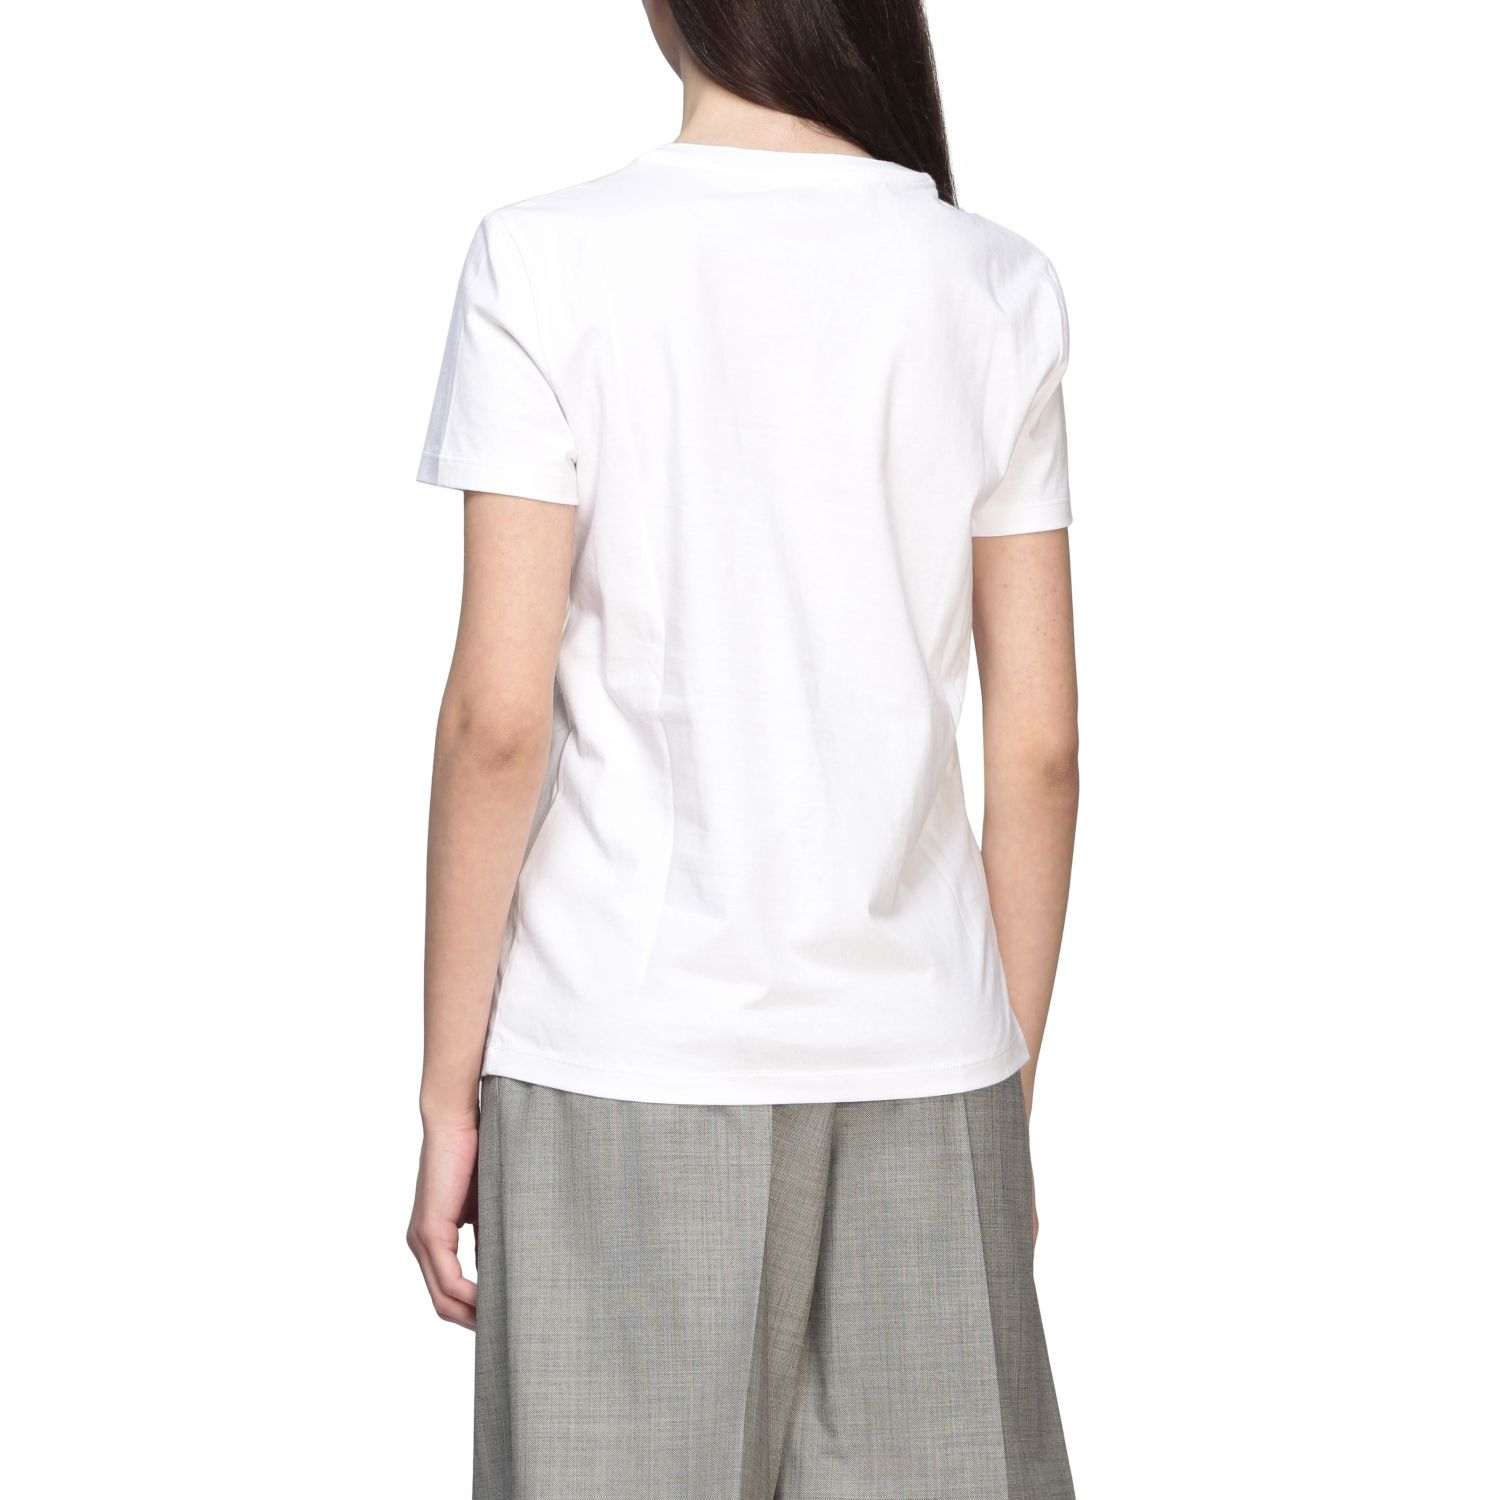 T-shirt women Max Mara white 3